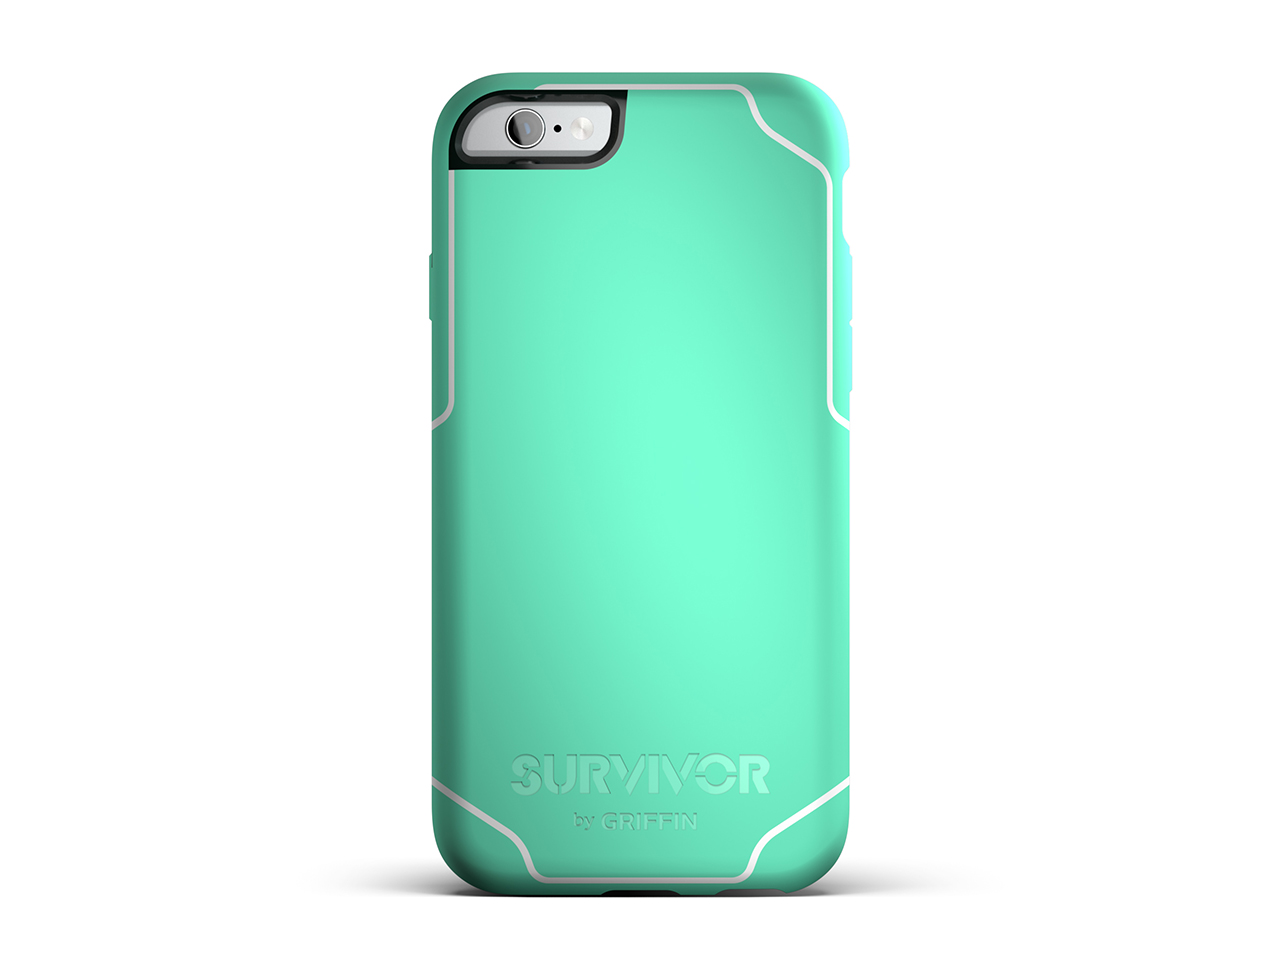 Mint/White Survivor Journey for iPhone 6/6s Protective Case - 6ft Drop Protection